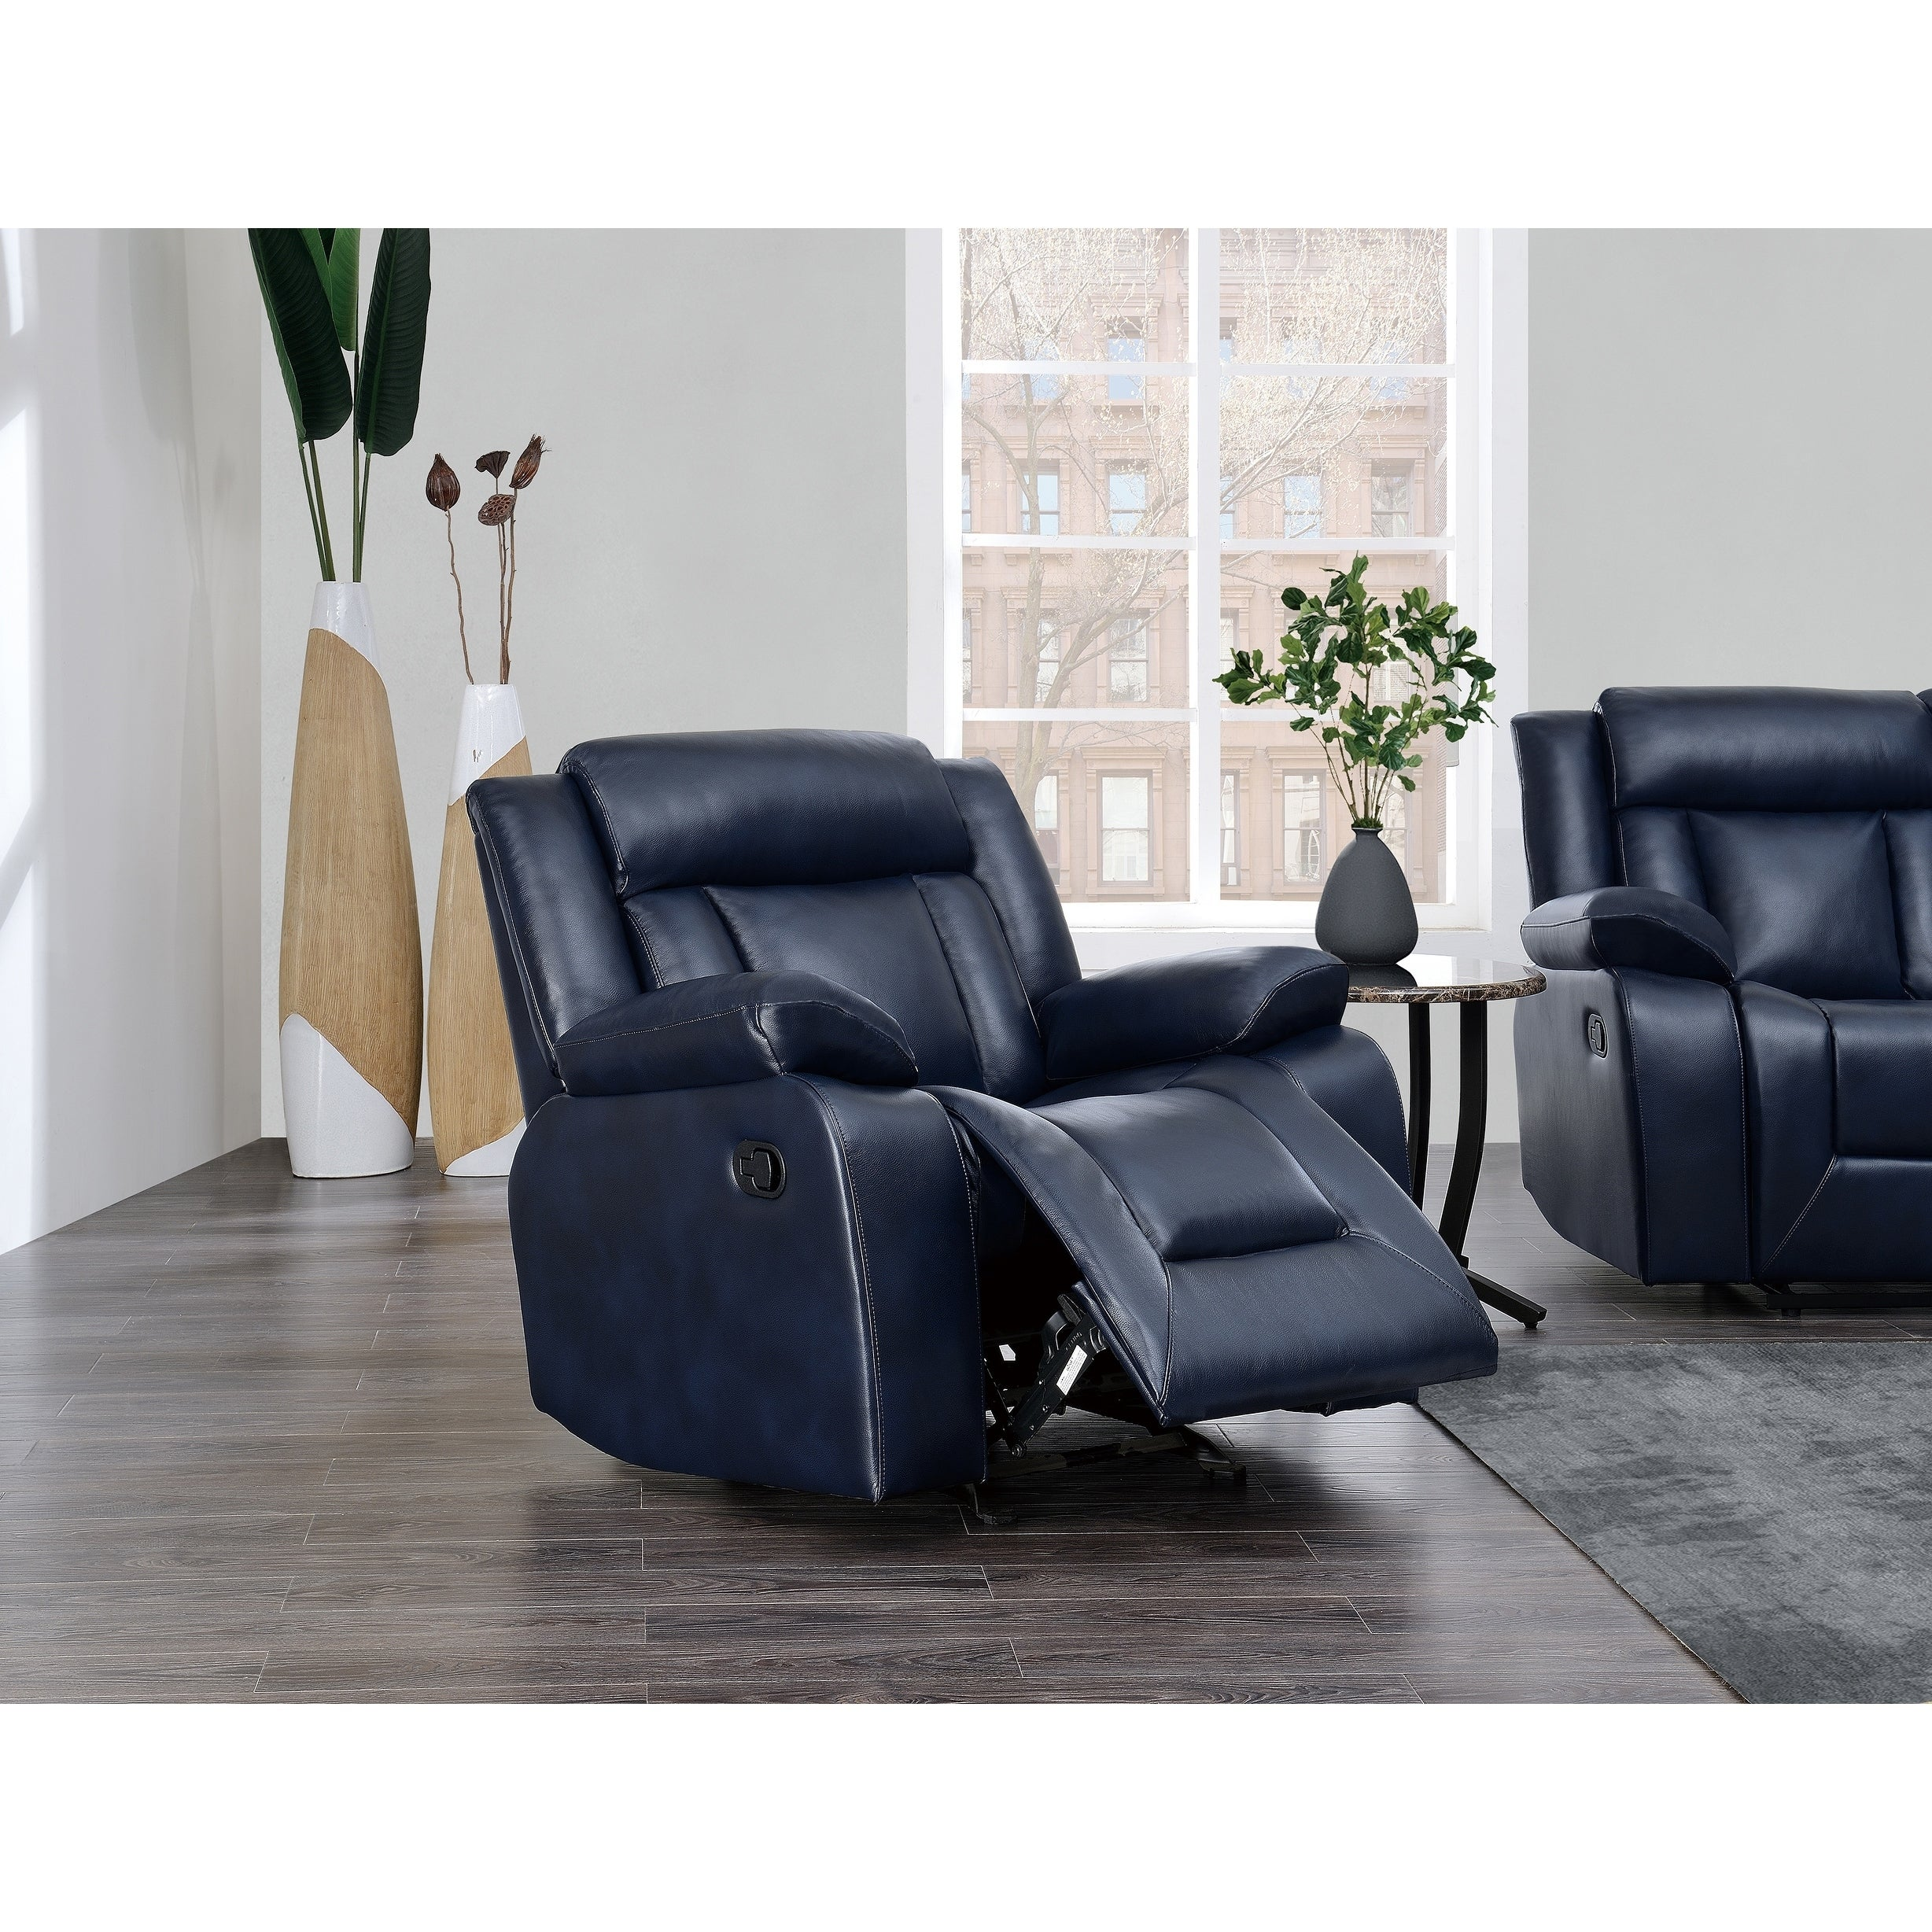 Shop global furniture navy blue reclining glider recliner free shipping today overstock com 18804374